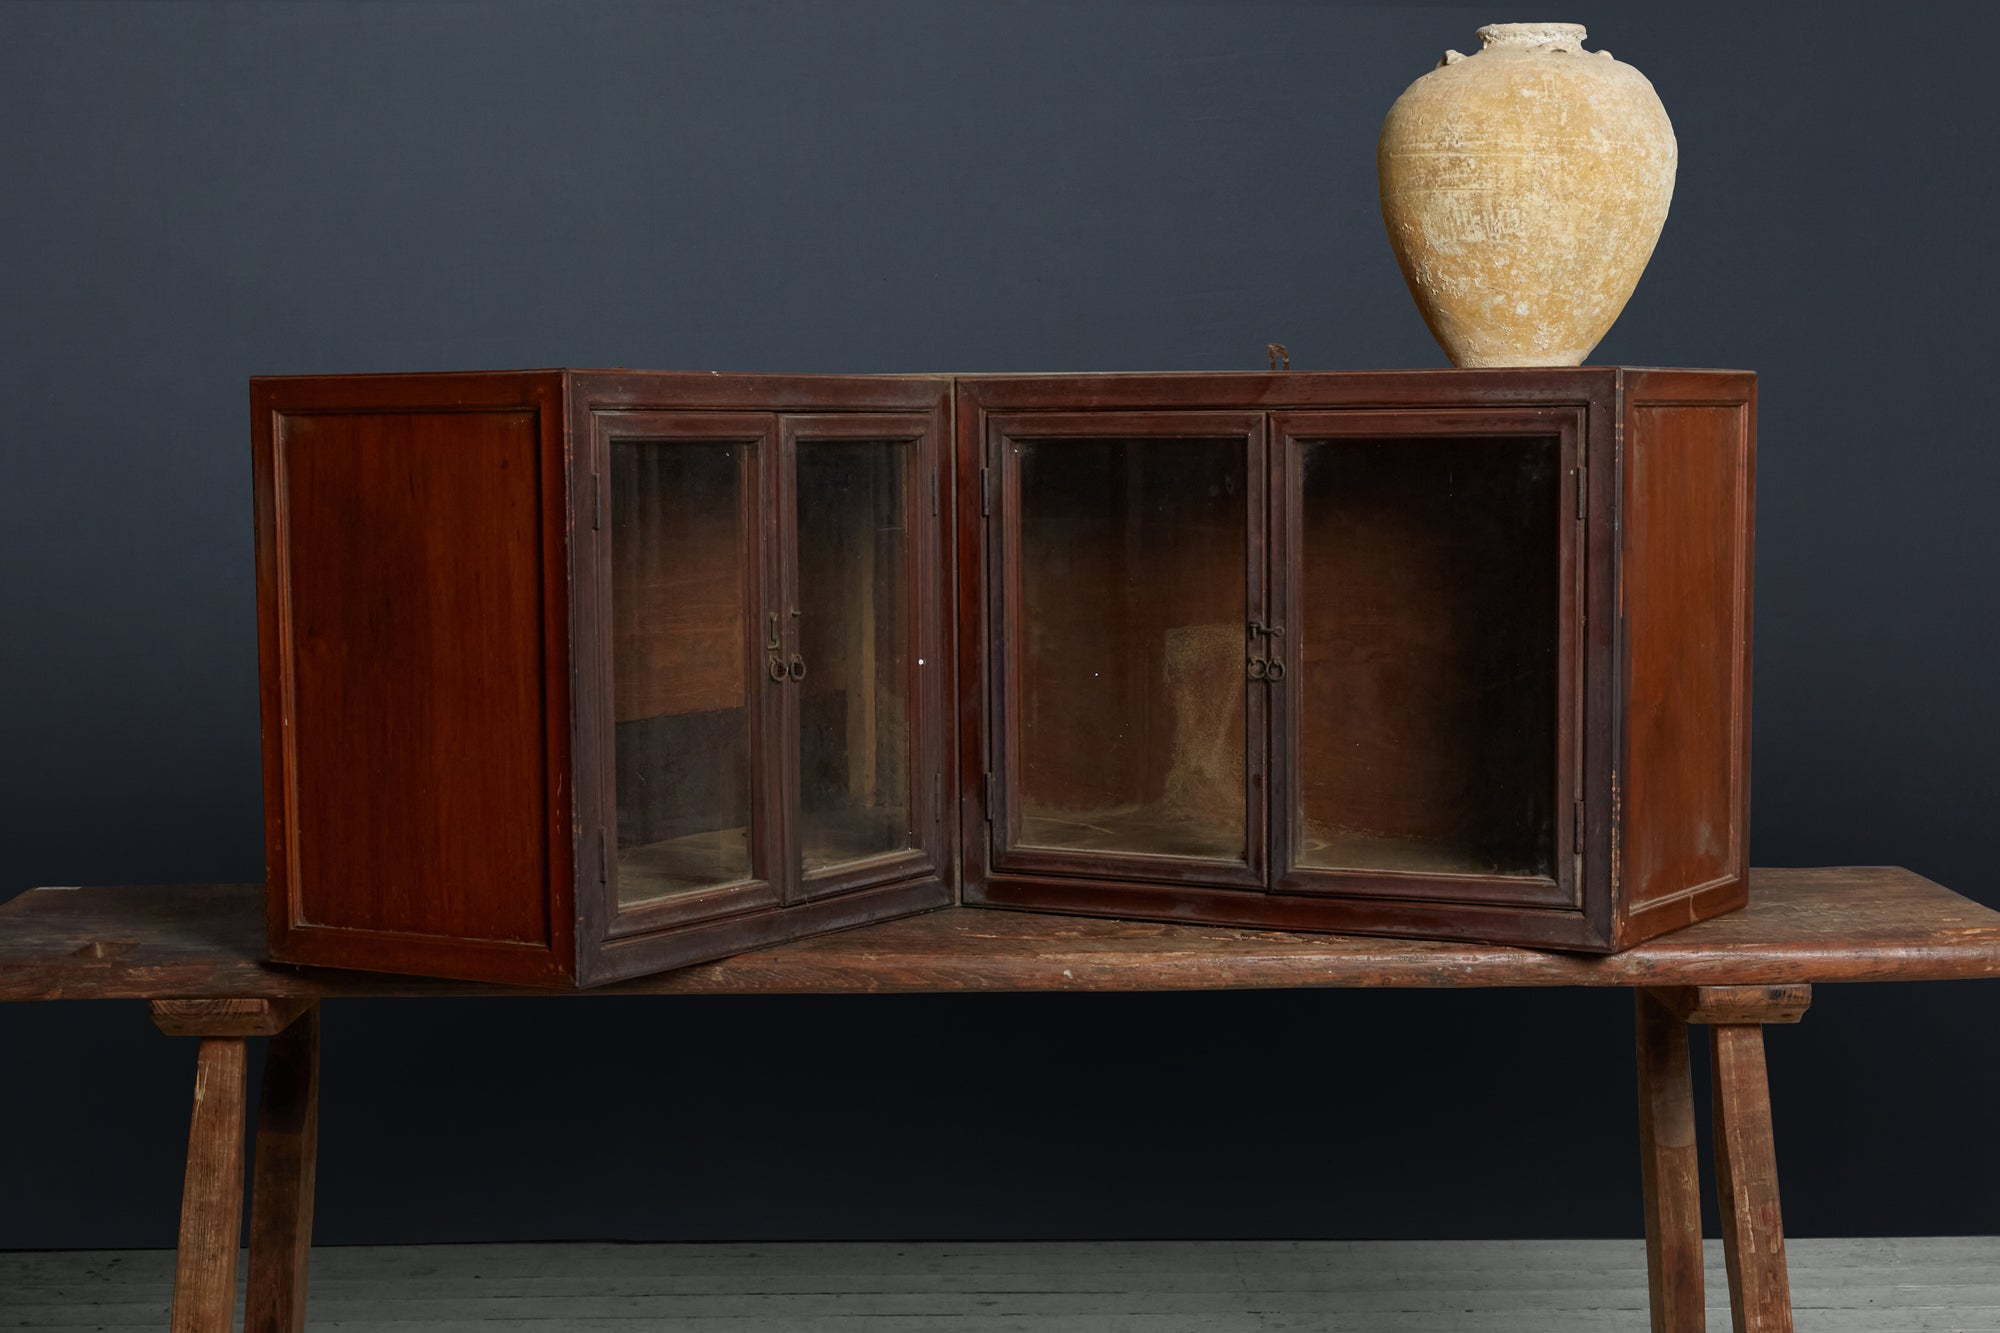 19th Century Teak Hanging Corner Apothocary Cabient from Jakarta